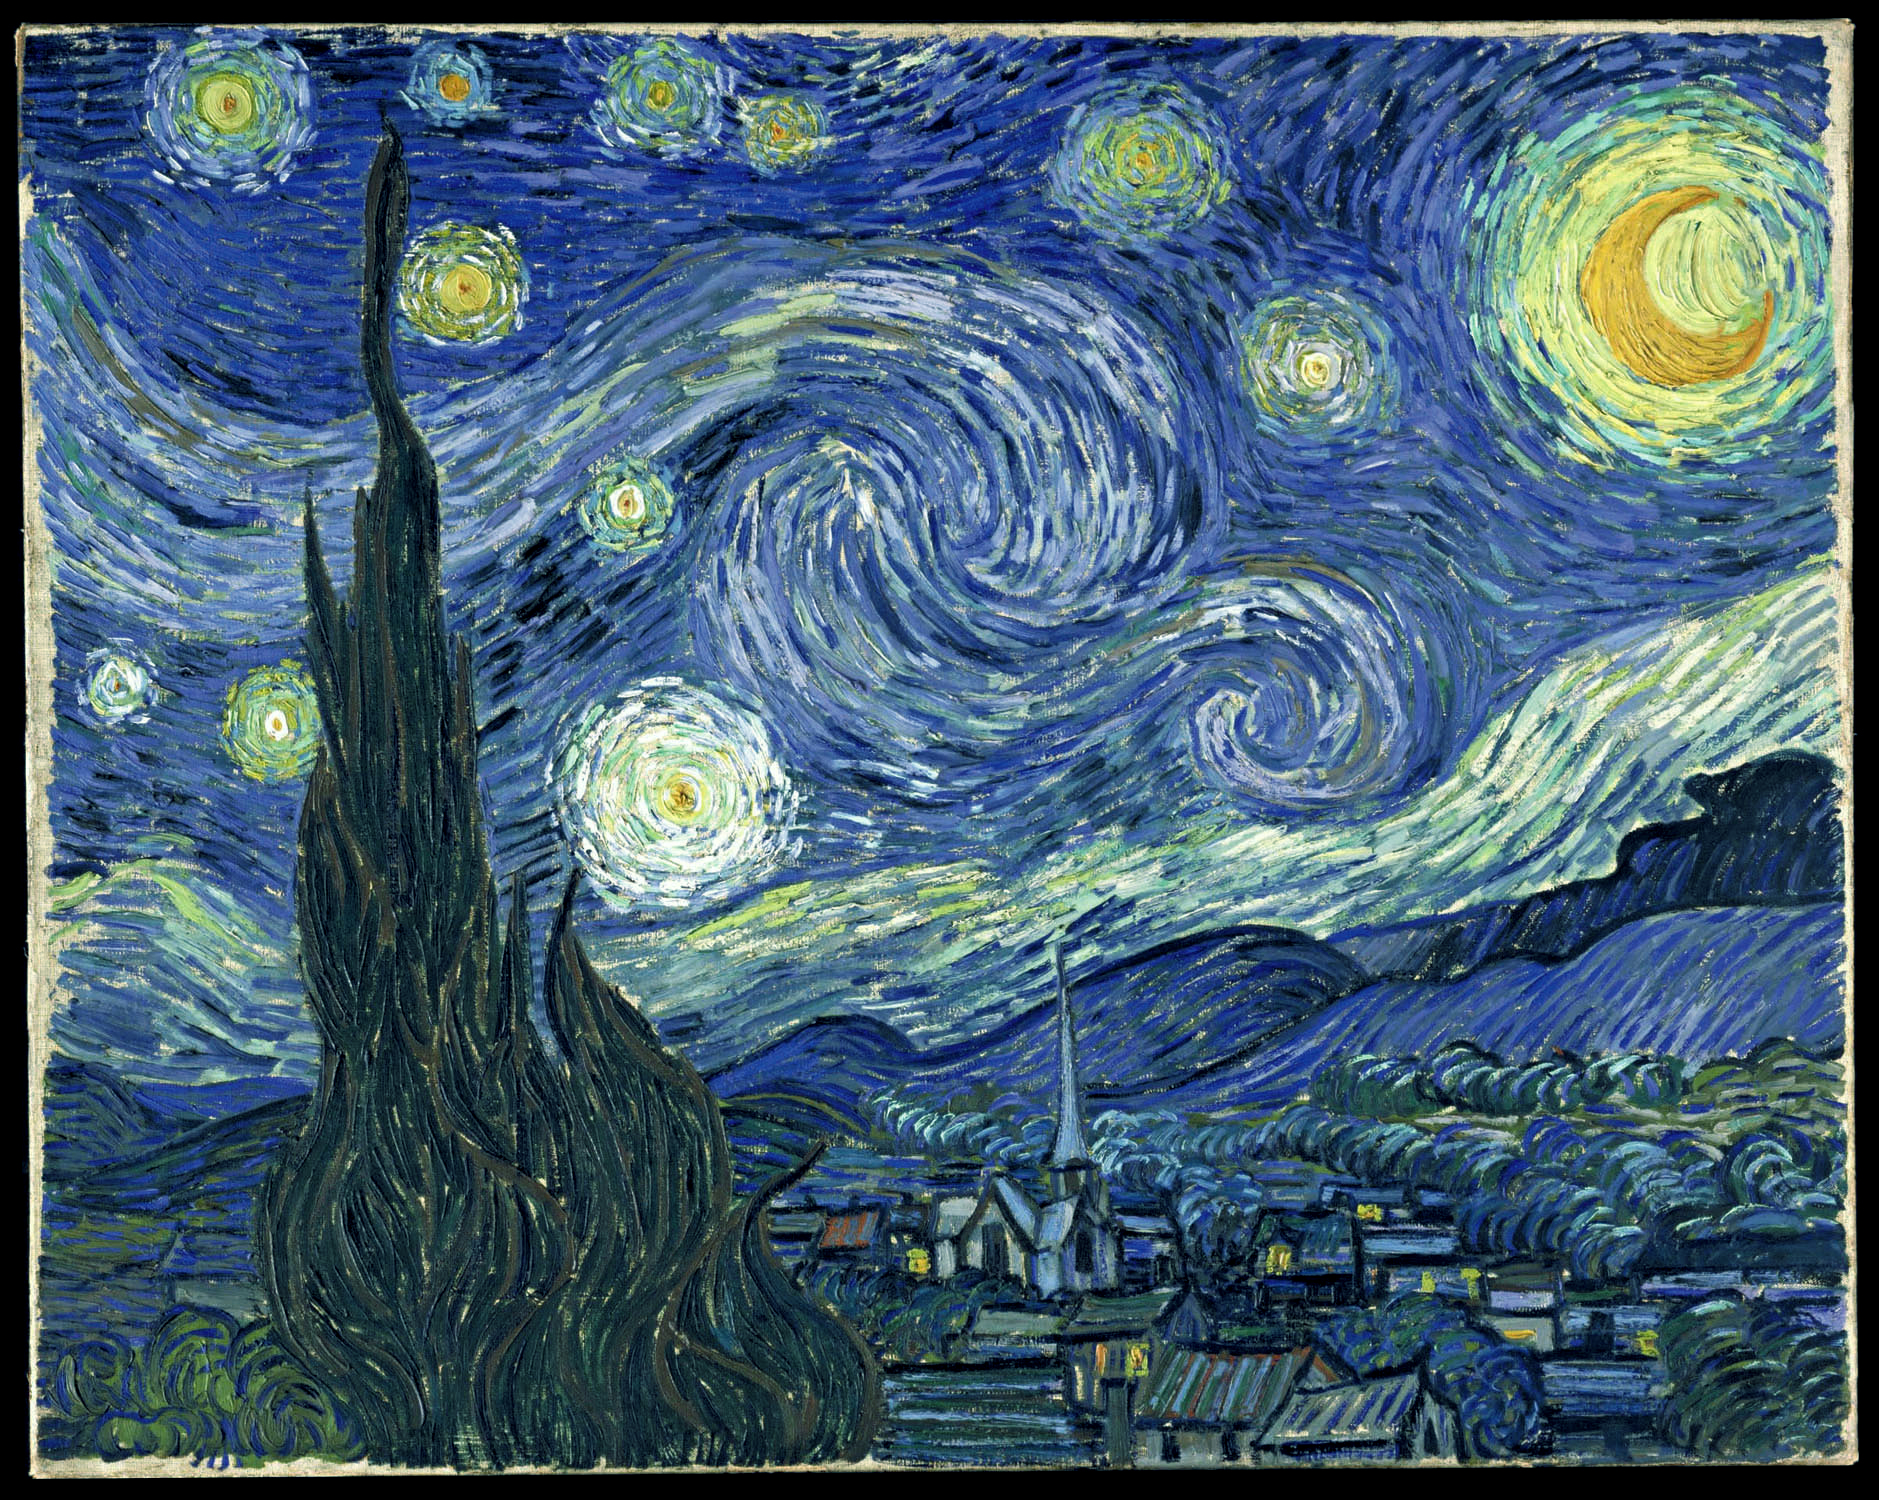 https://upload.wikimedia.org/wikipedia/commons/6/66/VanGogh-starry_night_ballance1.jpg